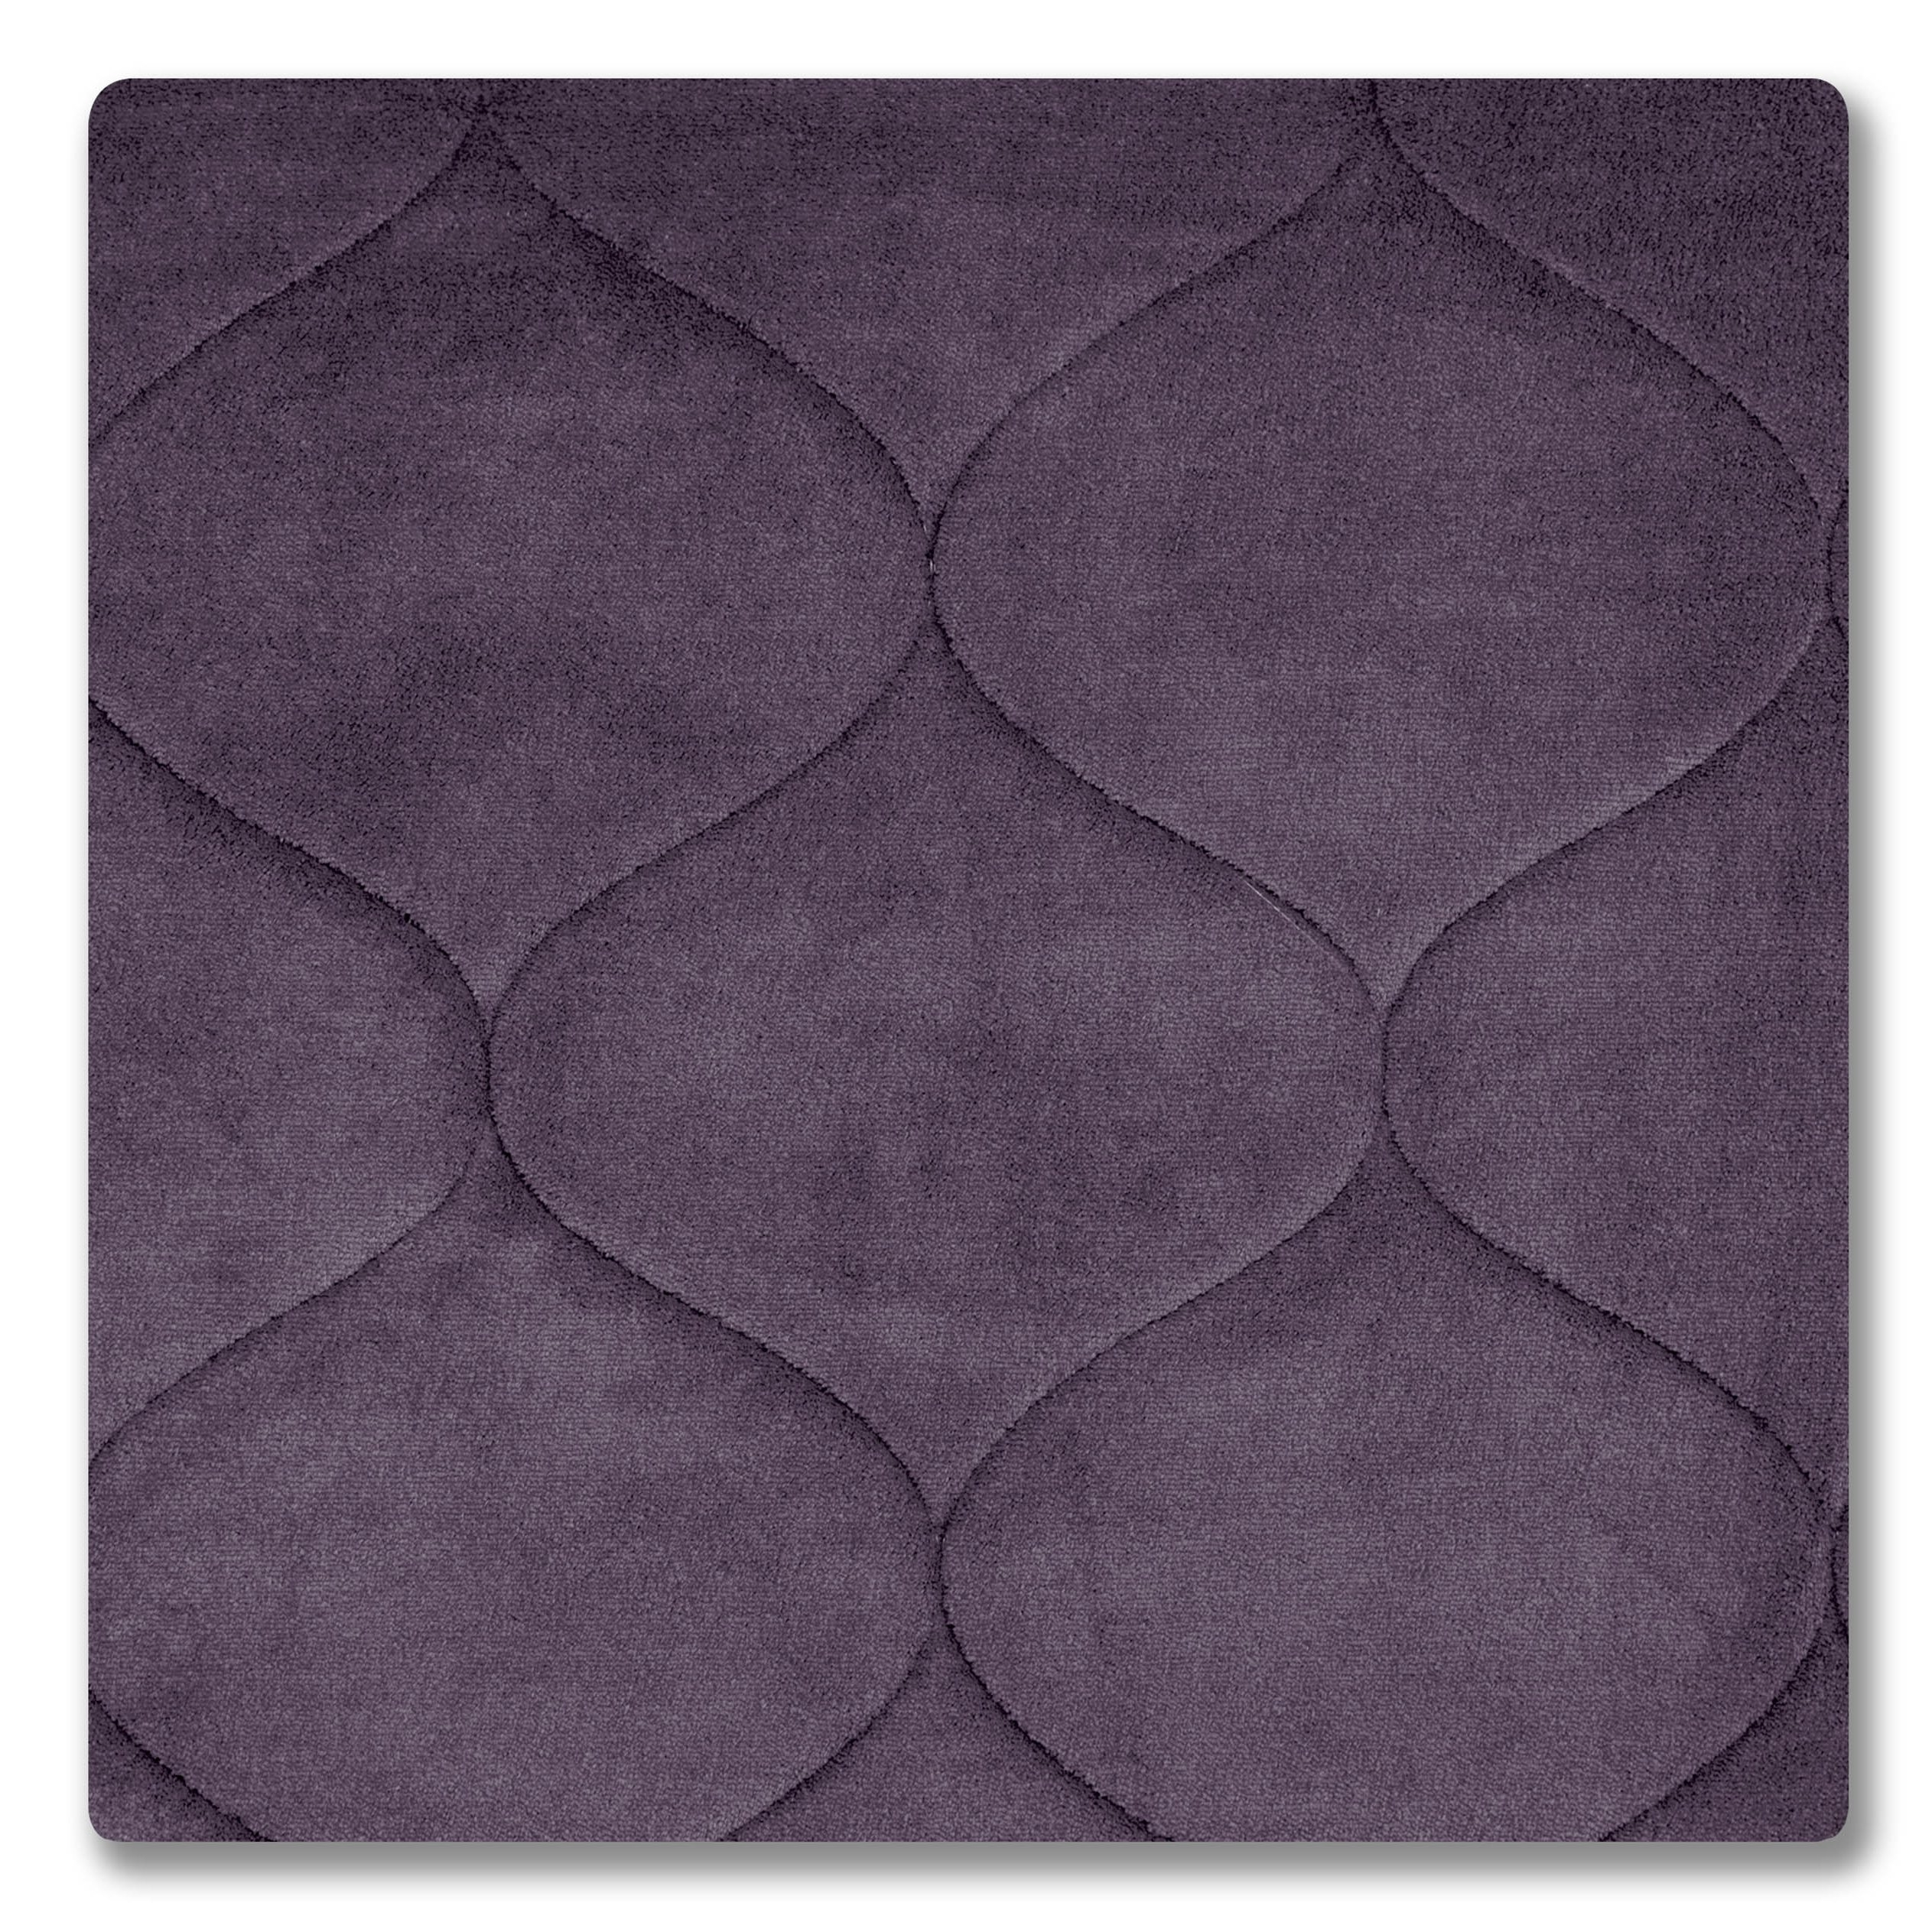 Permalink to Mauve Bath Mat